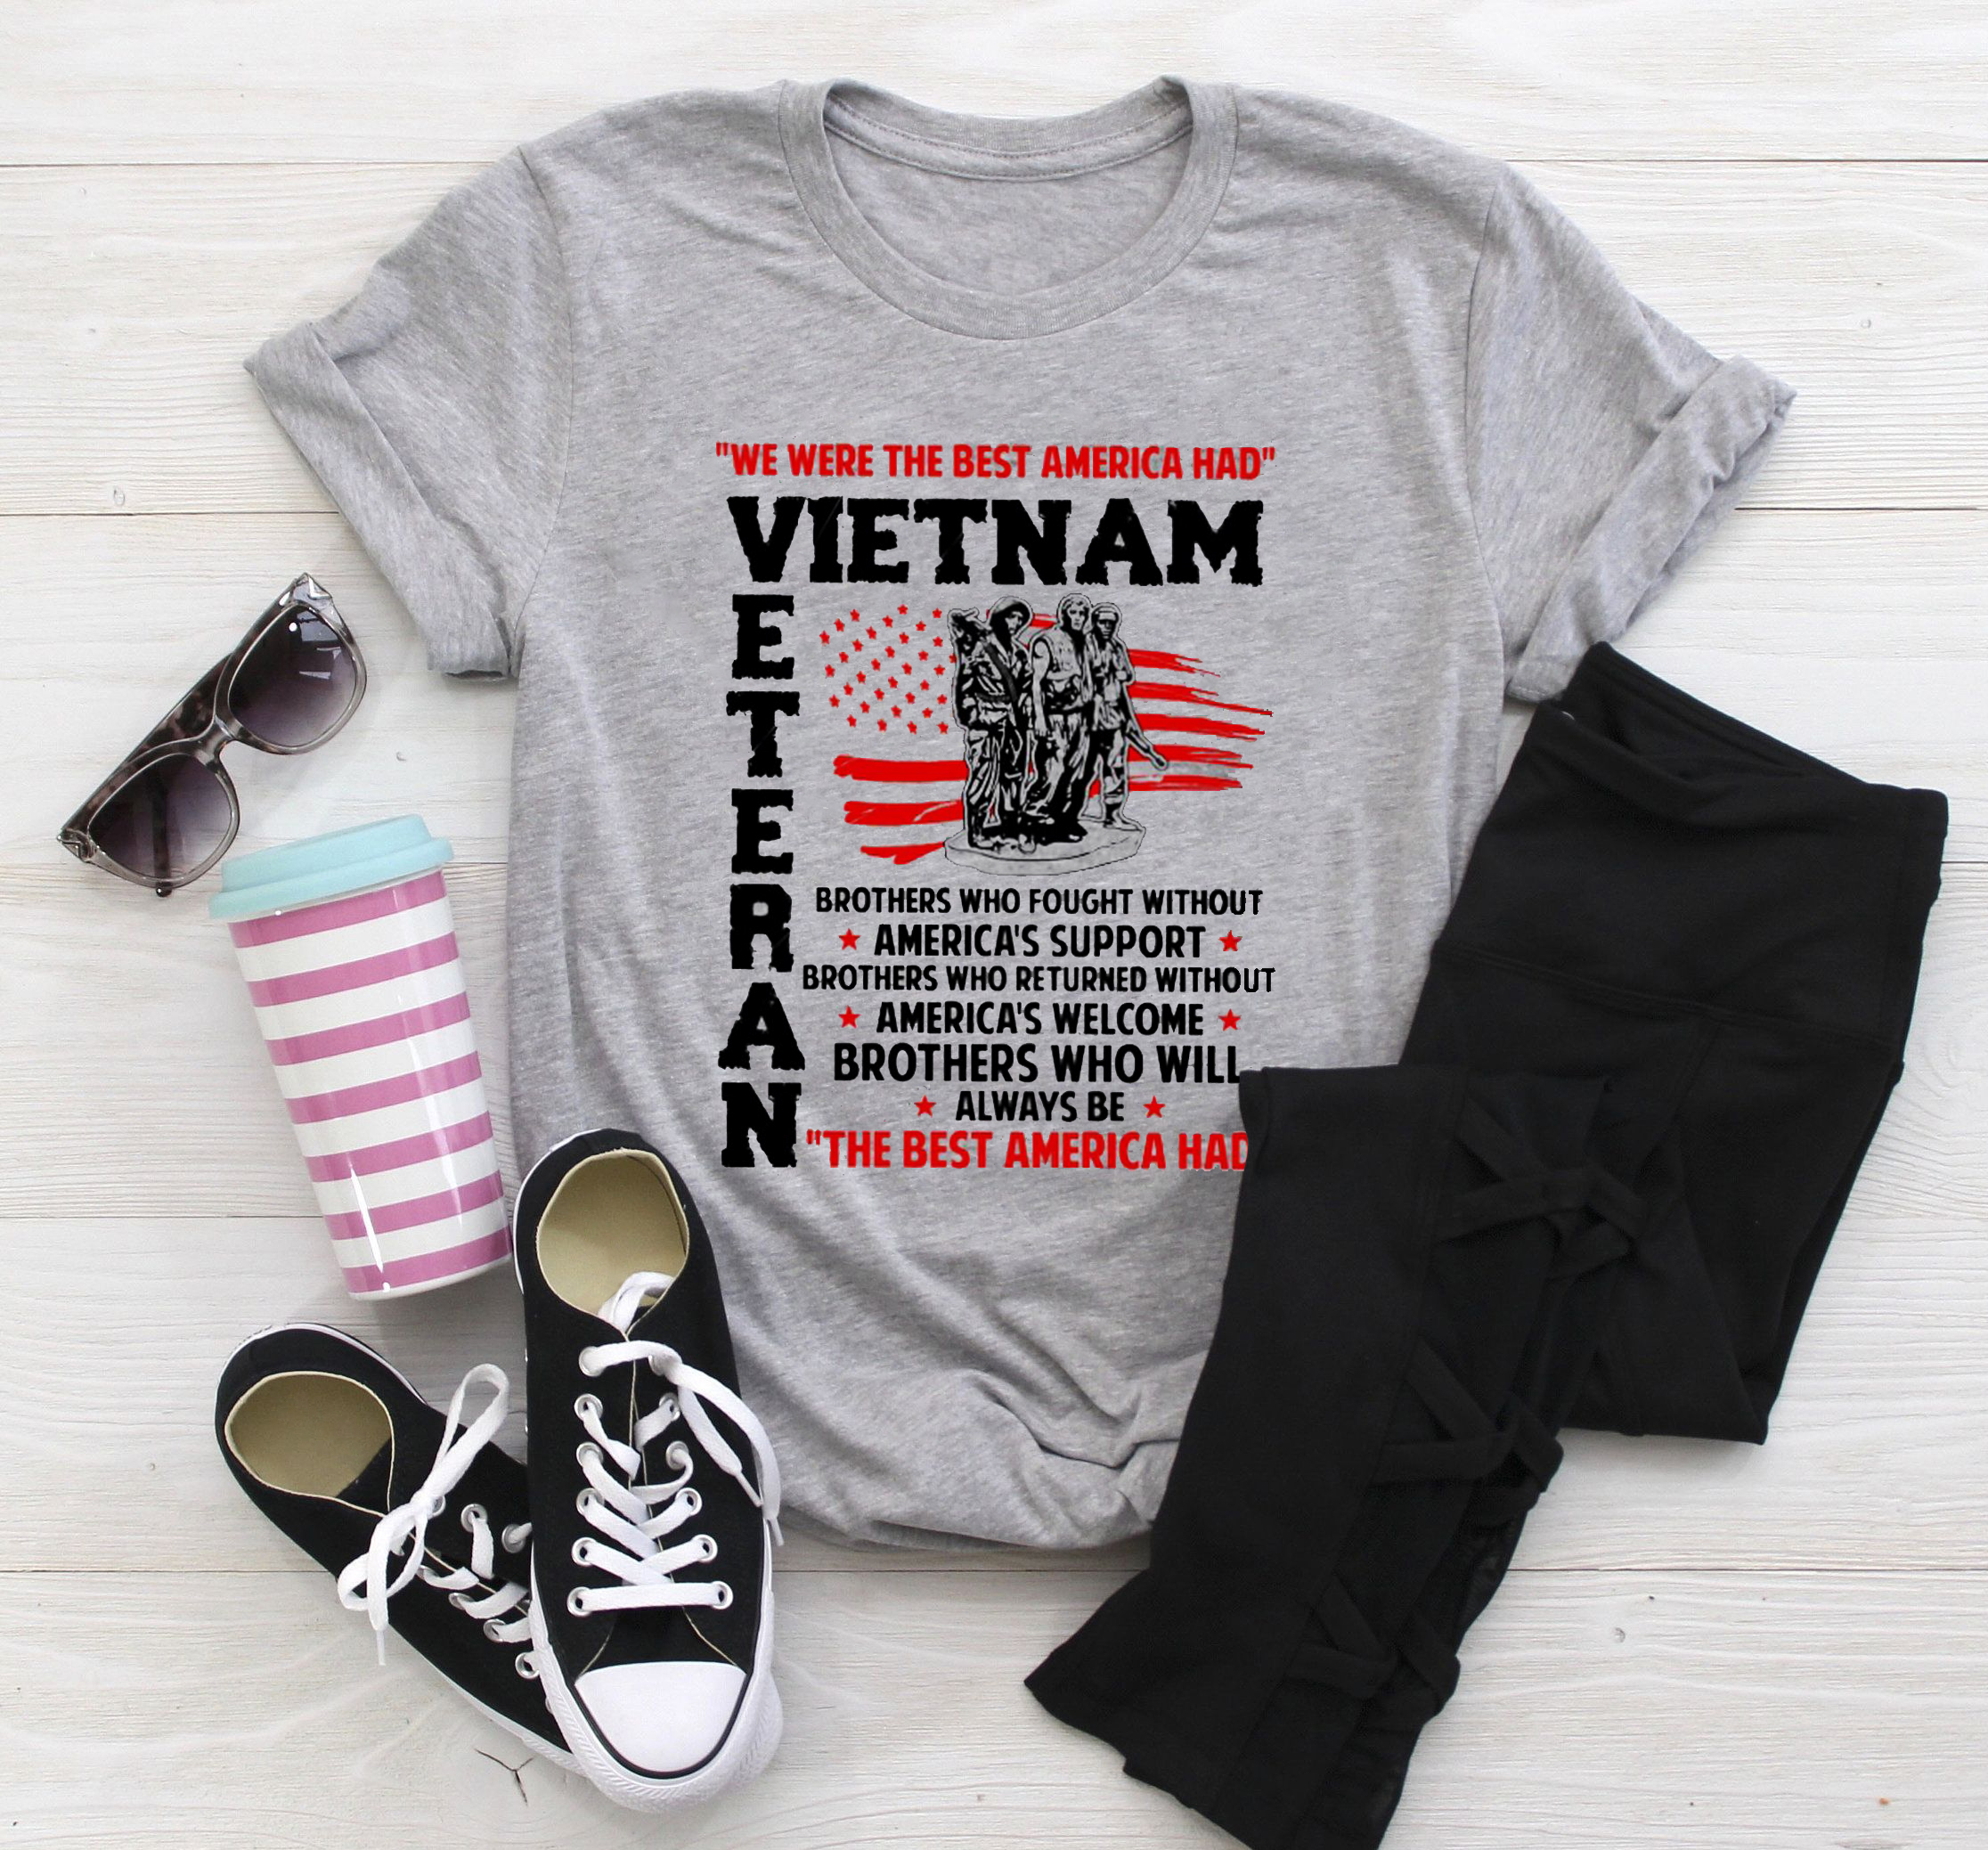 Vietnam Veteran Shirt Brothers Fought Without America Support